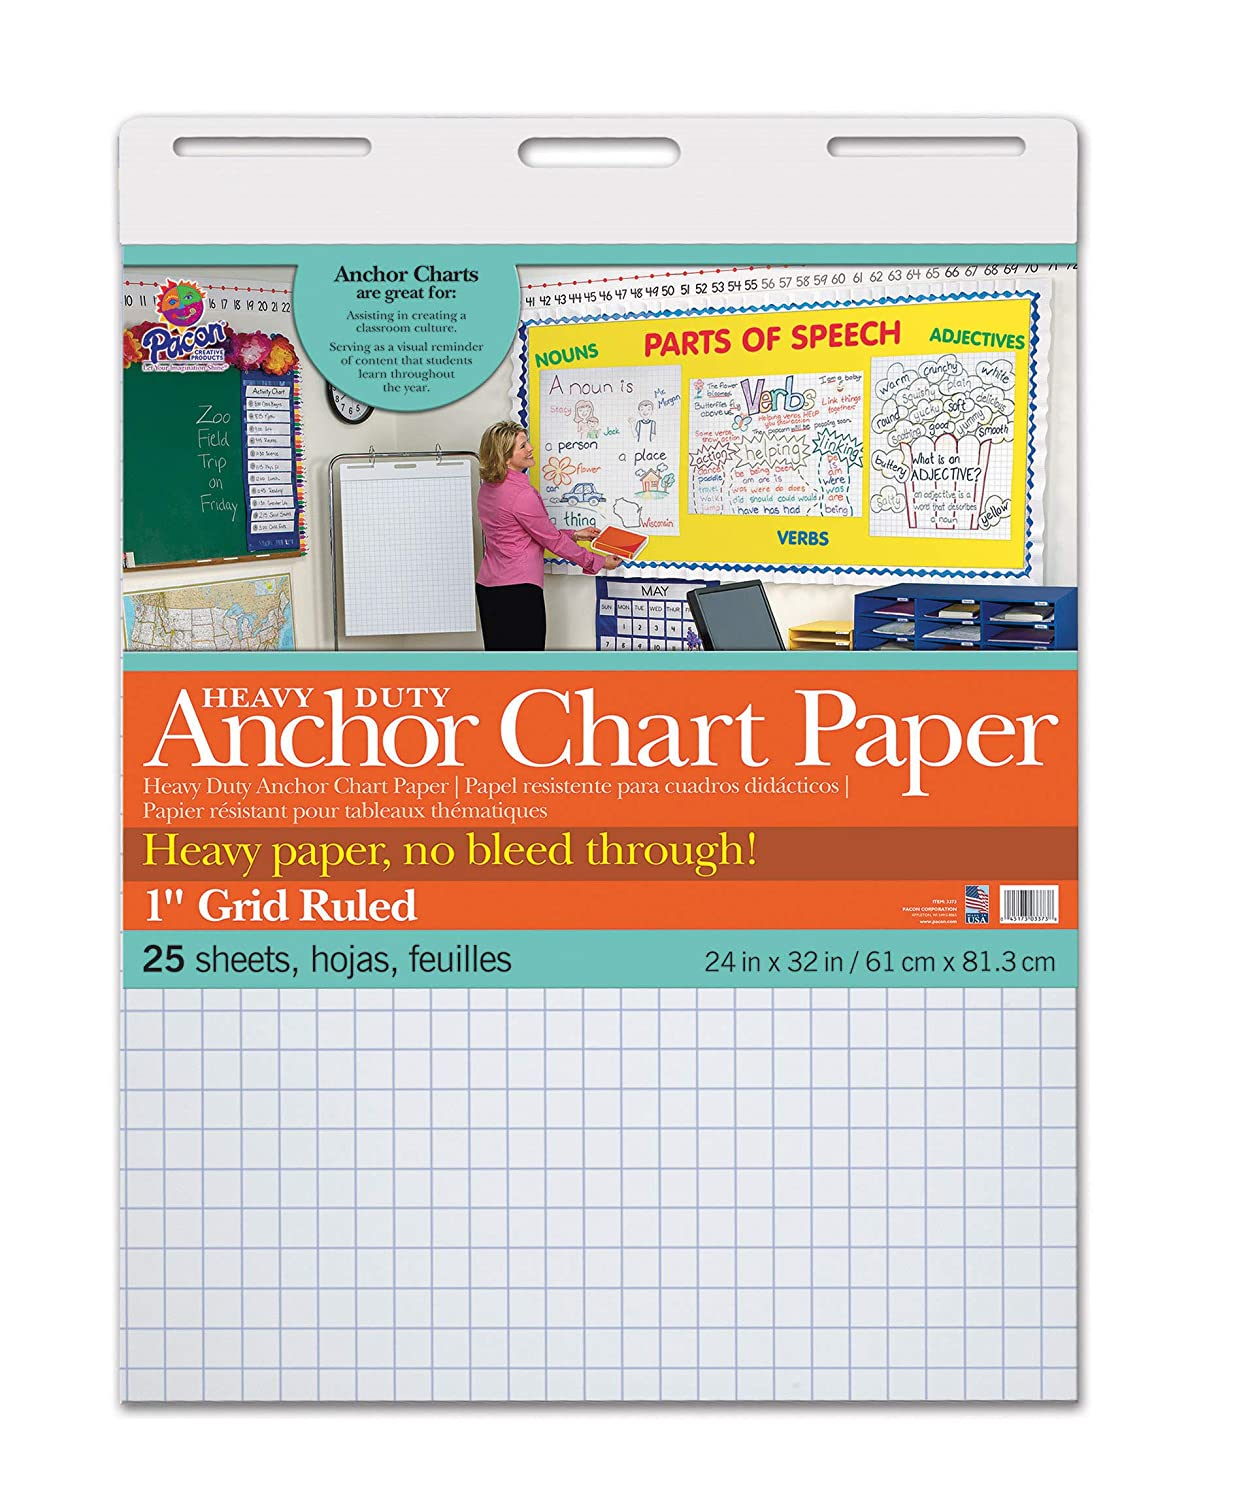 "Pacon PAC3373 Heavy Duty Anchor Chart Paper, 1"" Grid Ruled, 24"" Width, 32"" Length, 25 Sheets"